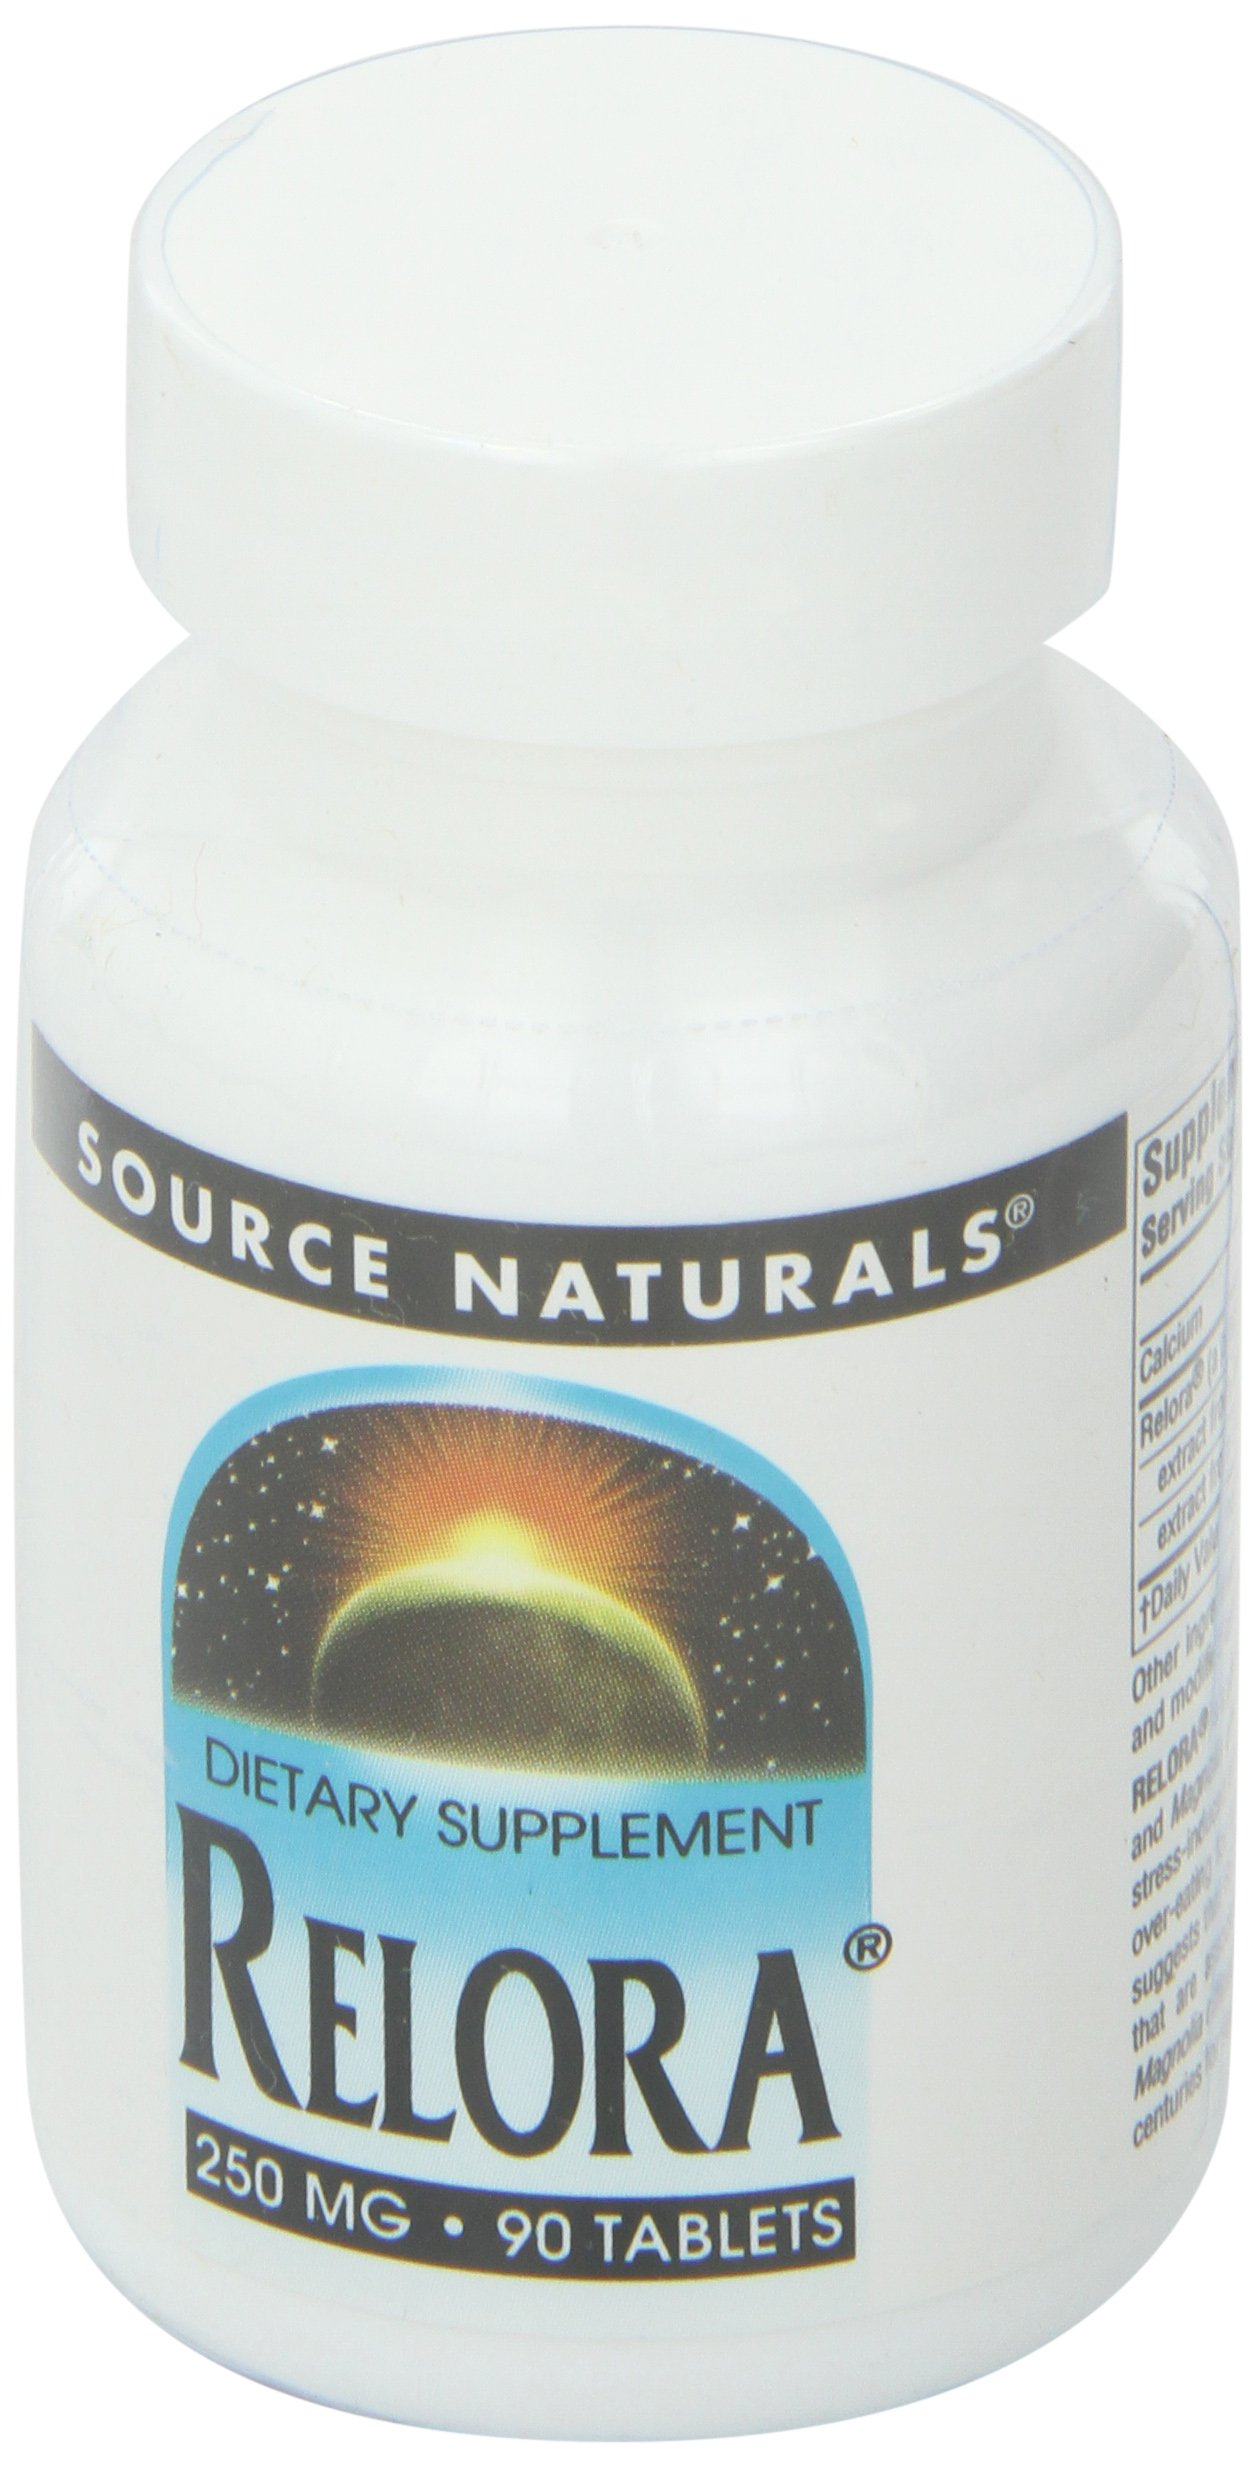 Source Naturals Relora, 250mg, 90 Tablets (Pack of 2) by Source Naturals (Image #1)